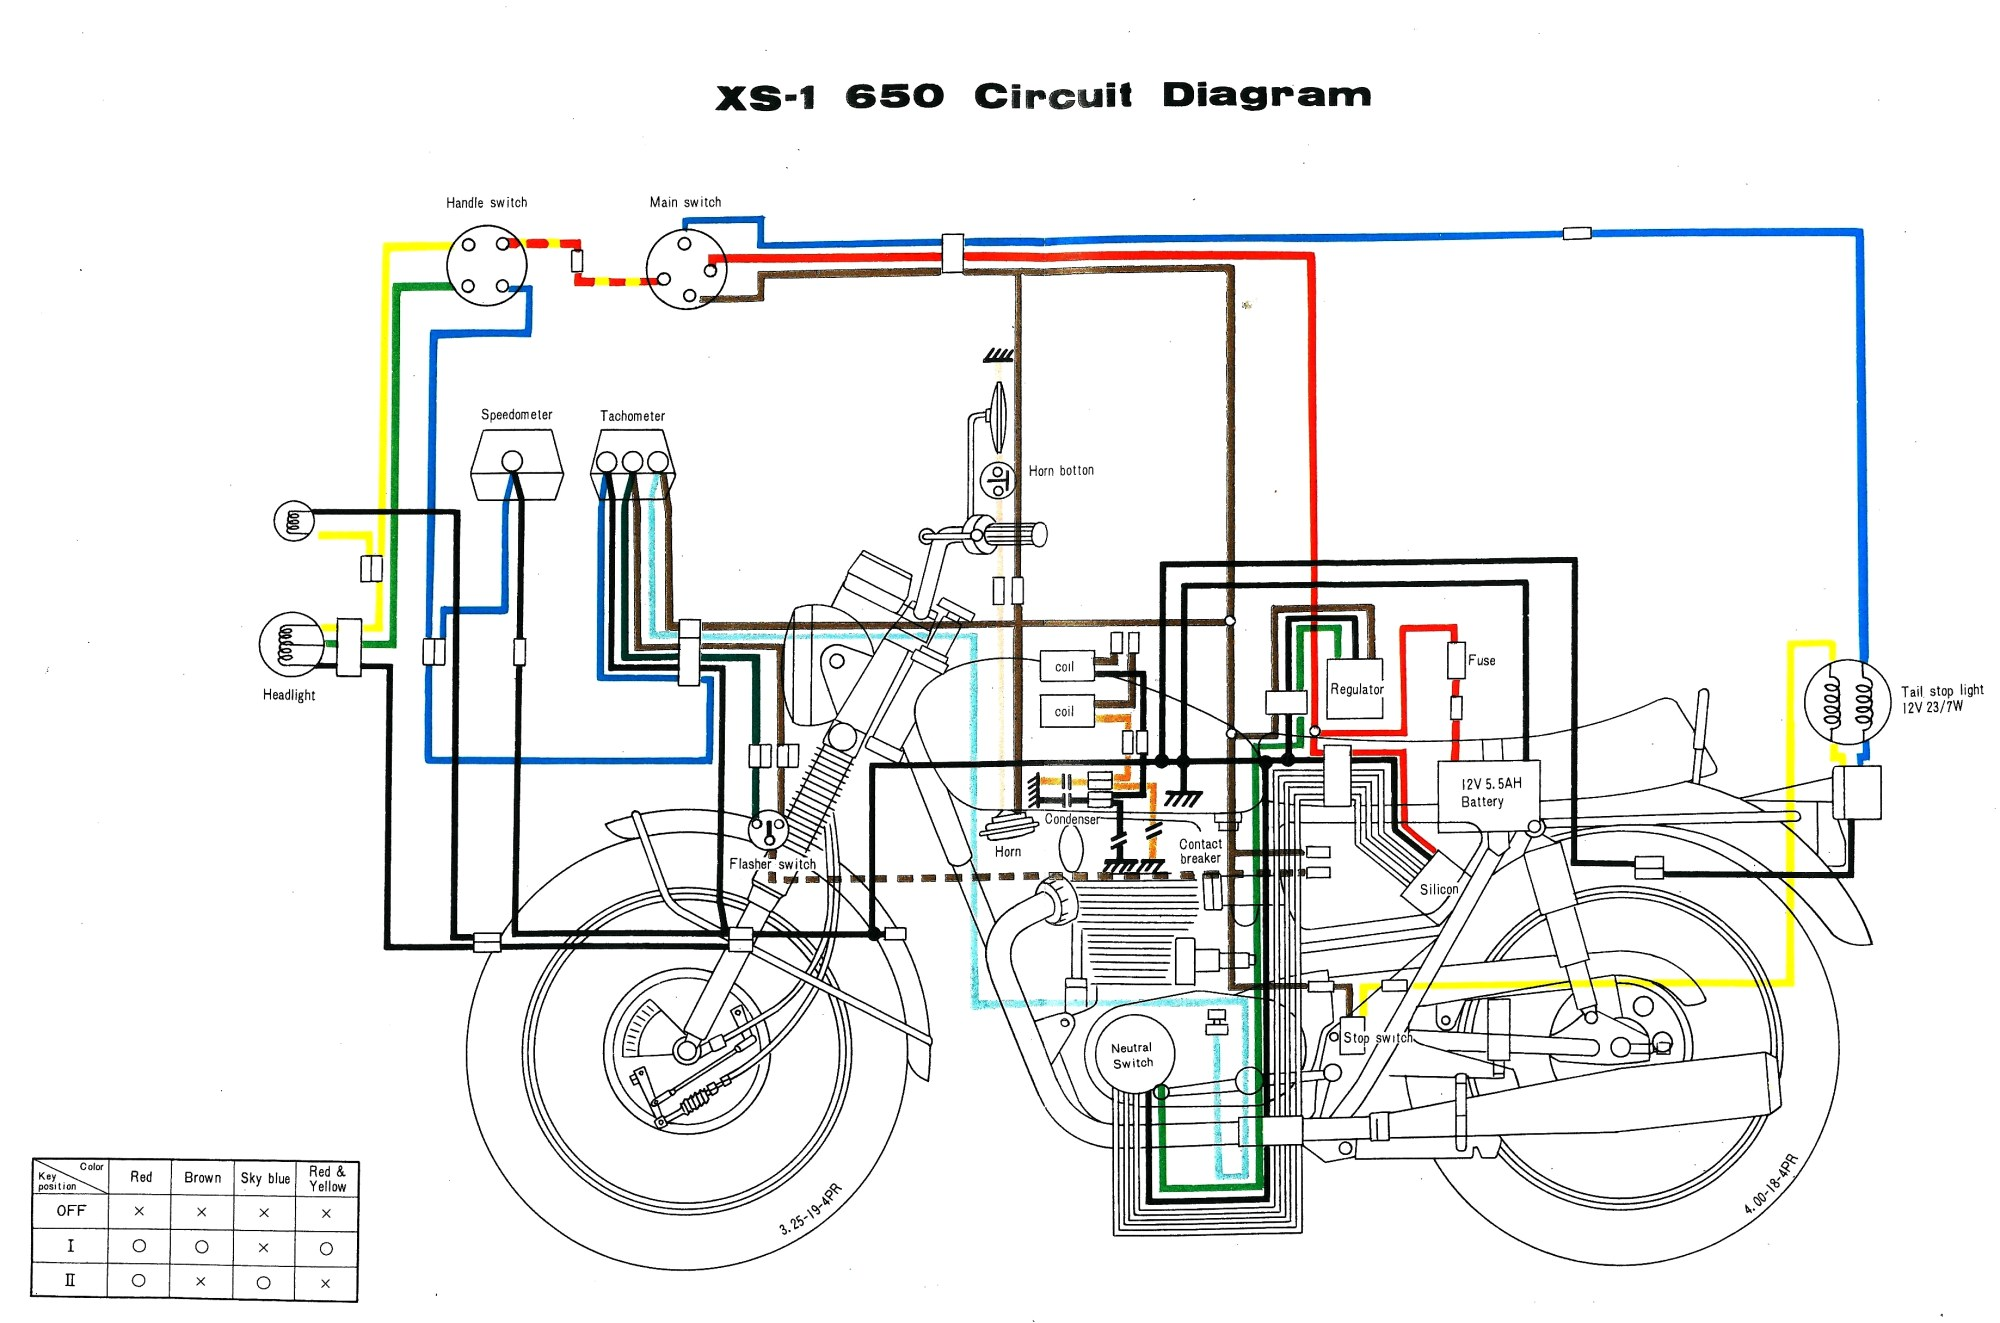 hight resolution of wire diagrams 1979 xs650 wiring diagram for you american wiring diagram cafe wiring diagram